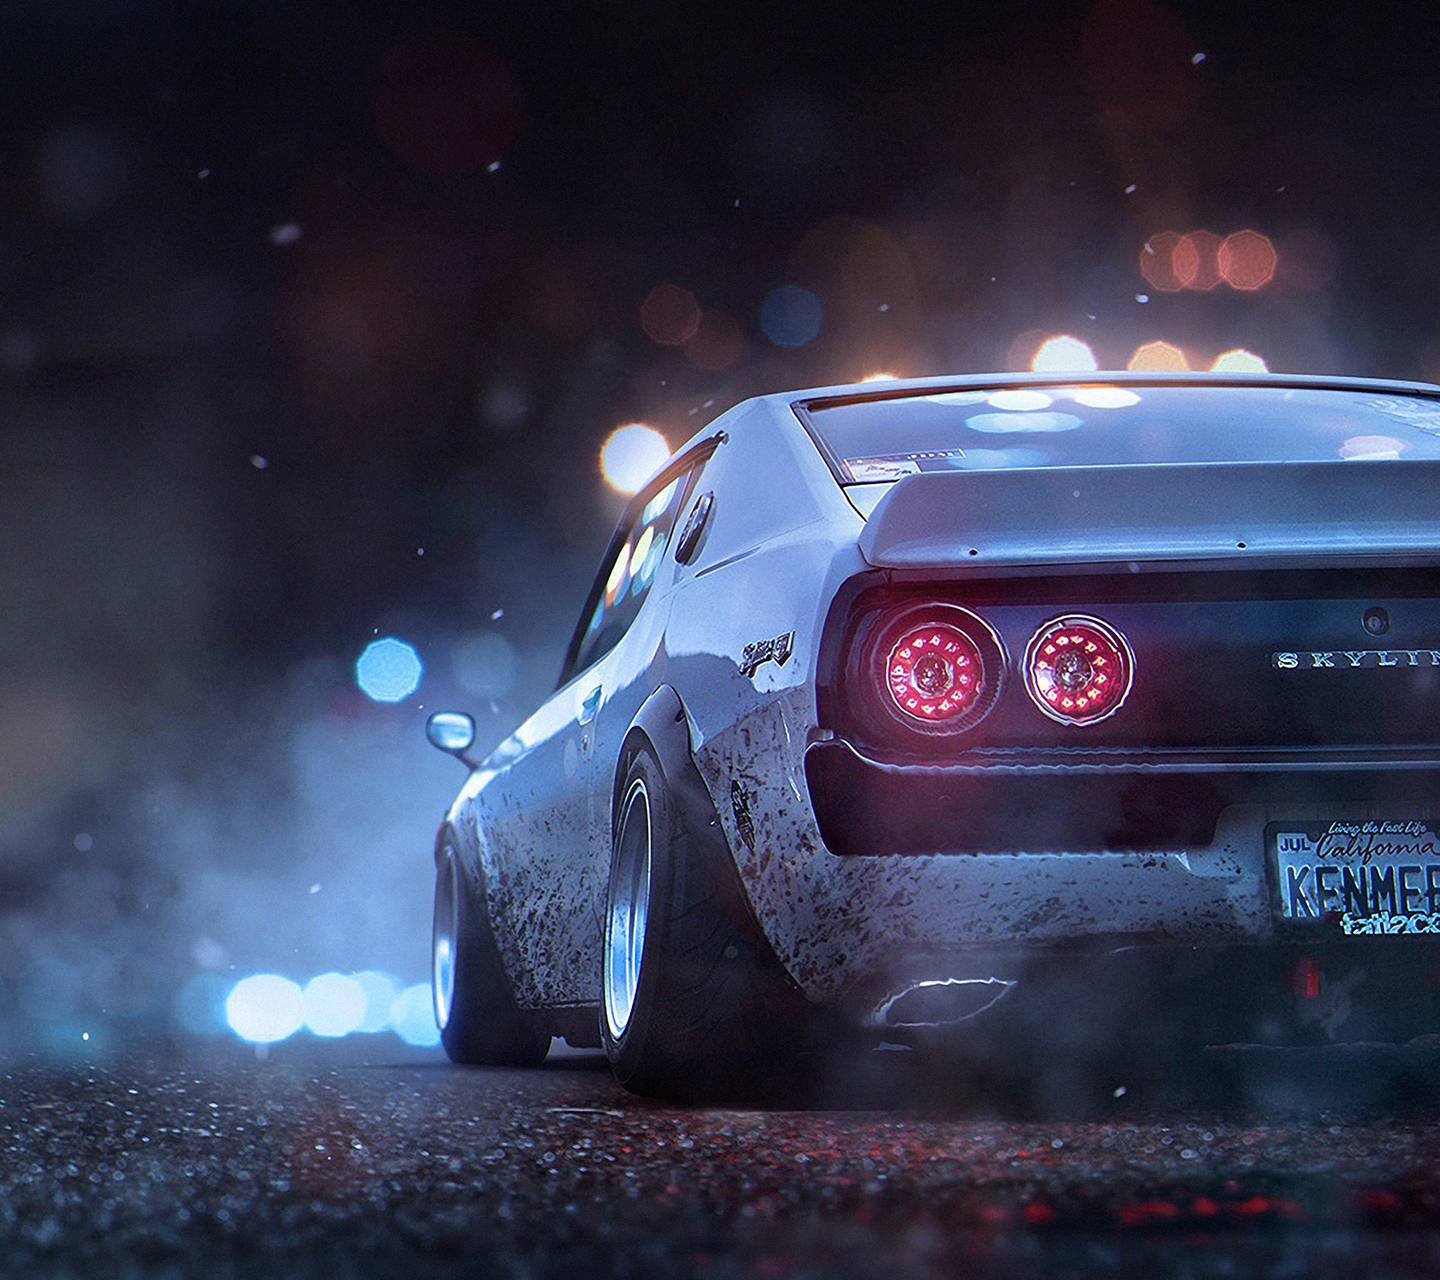 Download free nissan skyline wallpapers for your mobile phone by nissan skyline voltagebd Choice Image